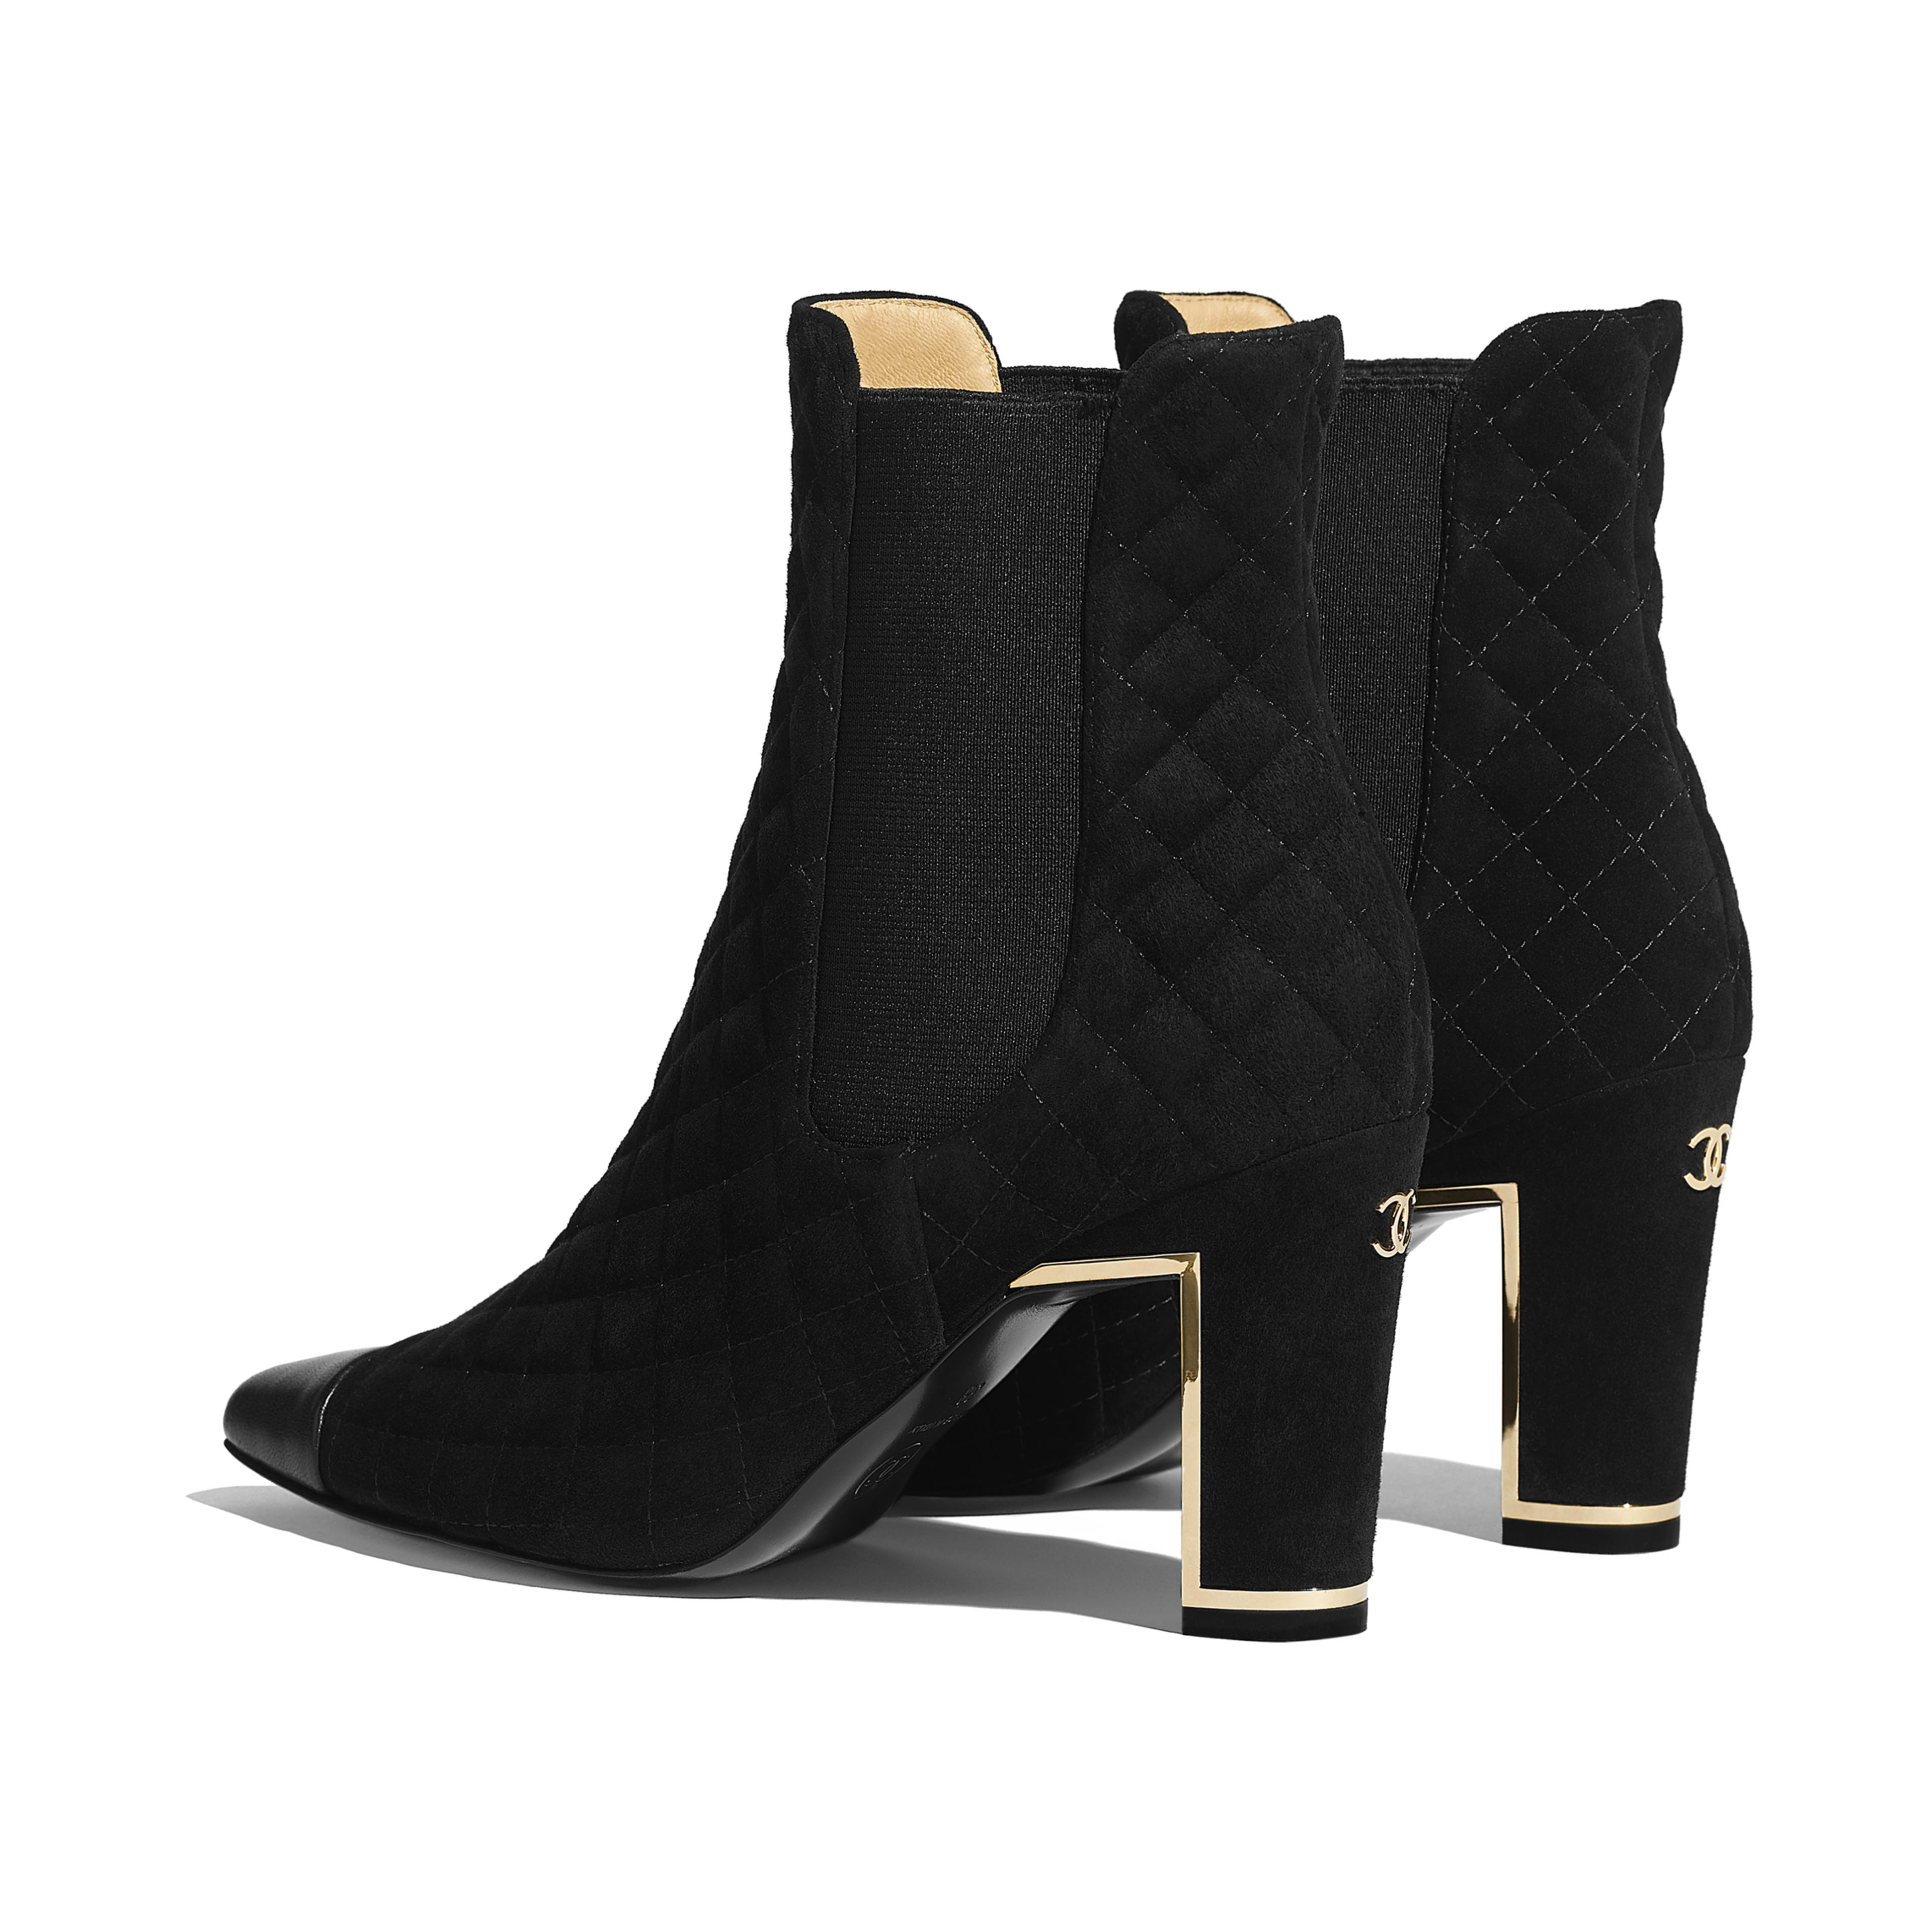 Ankle Boots - Black - Suede Calfskin & Lambskin - Other view - see full sized version